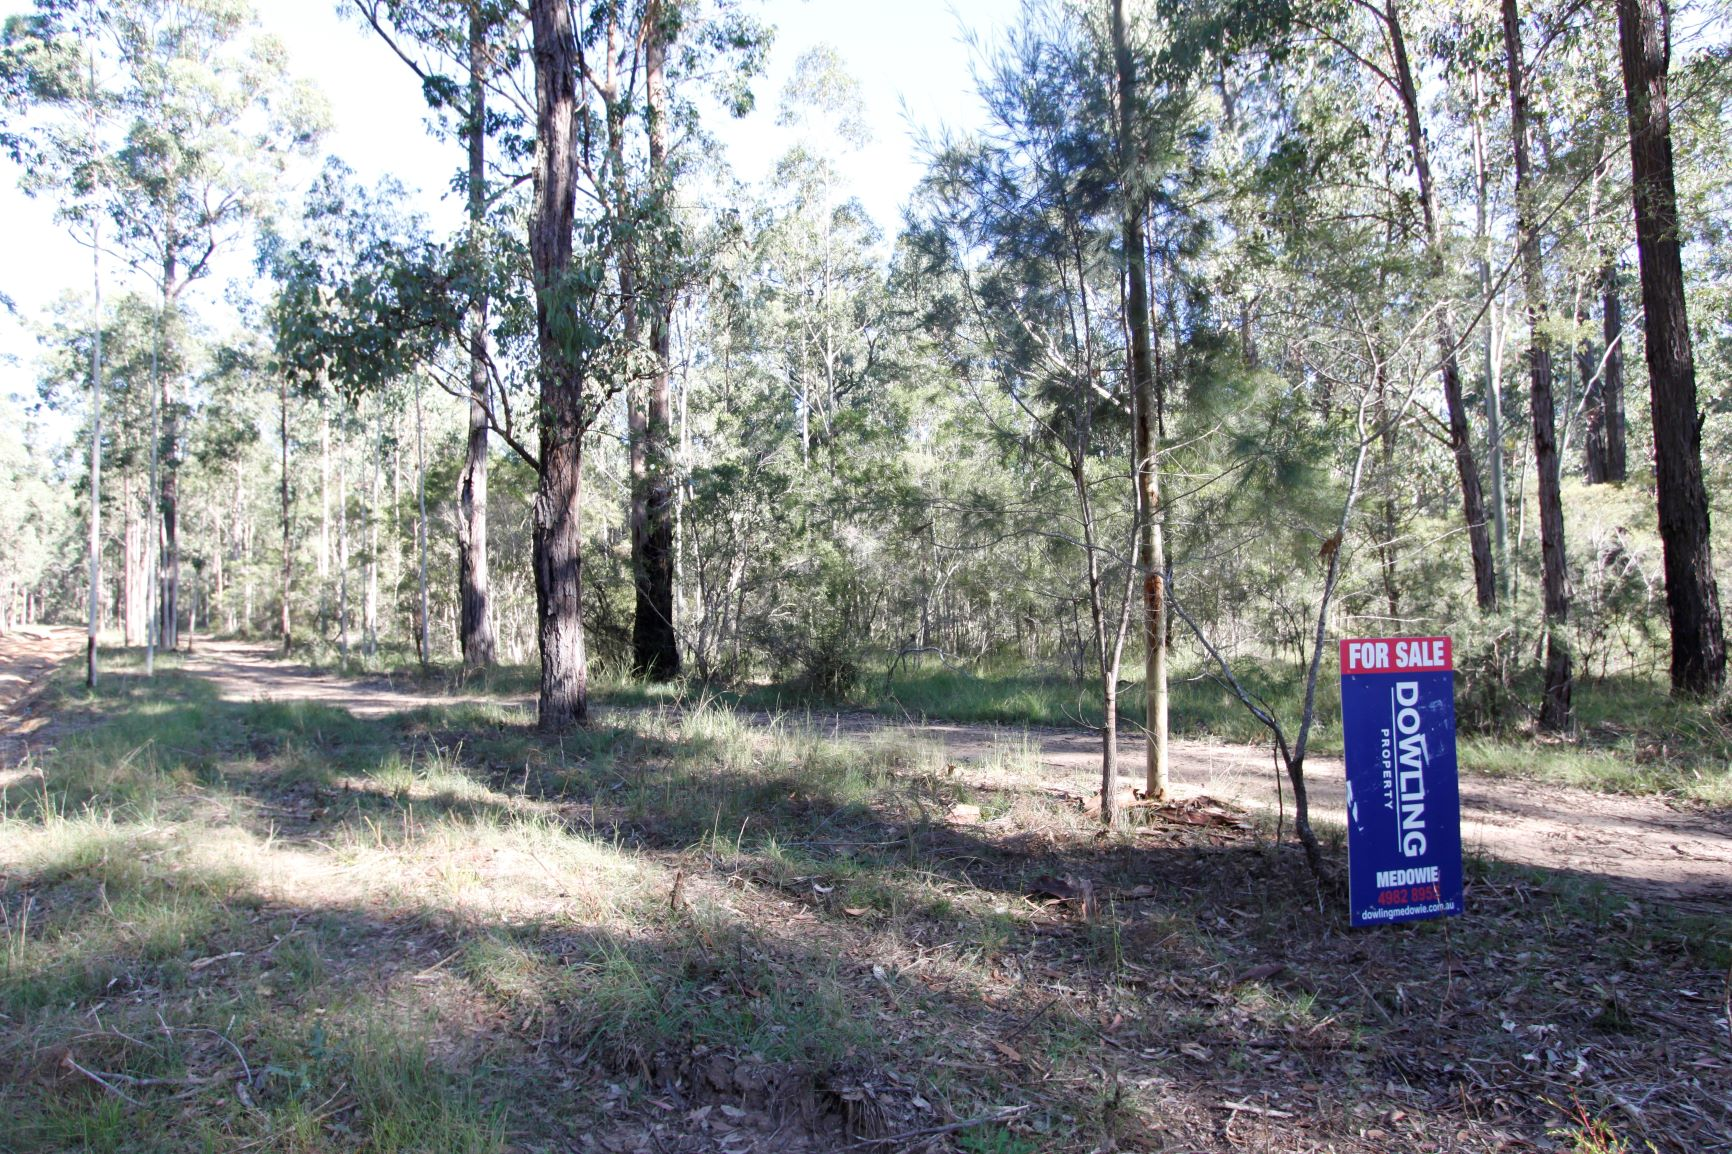 Lot 1/329 RACECOURSE ROAD CESSNOCK